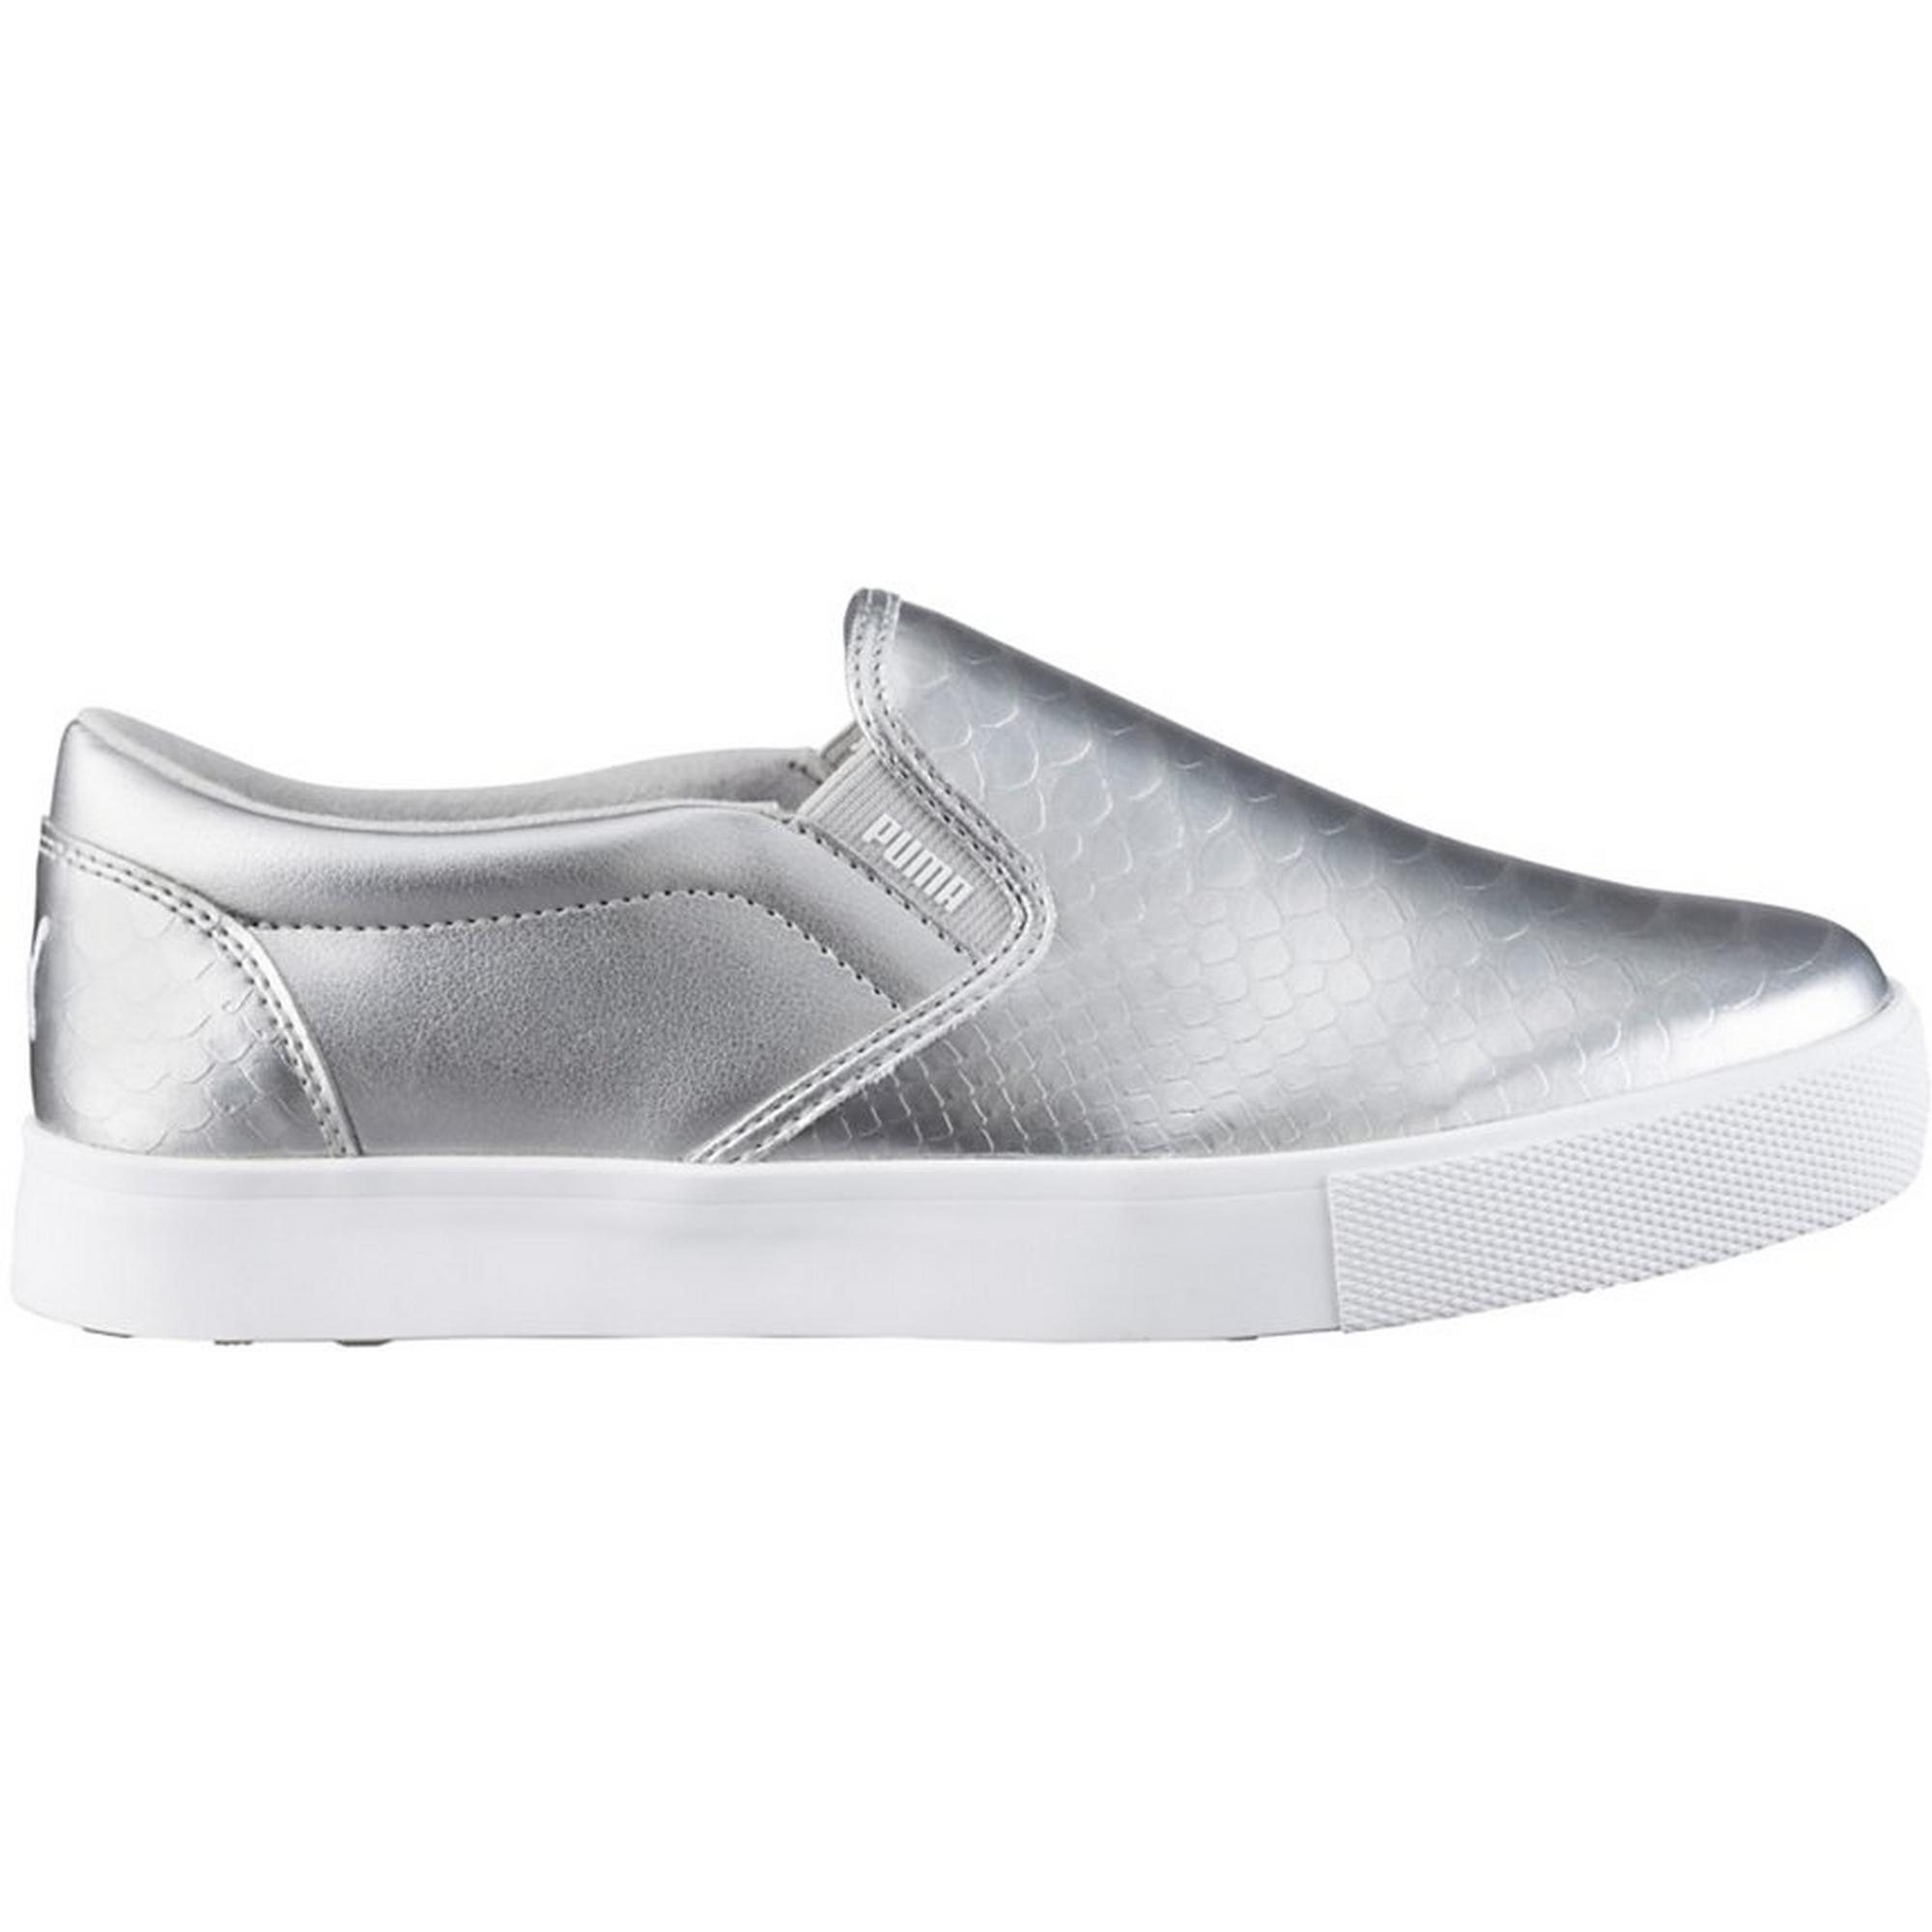 Women's Tustin Slip On Spikeless Golf Shoe- Puma Silver/White